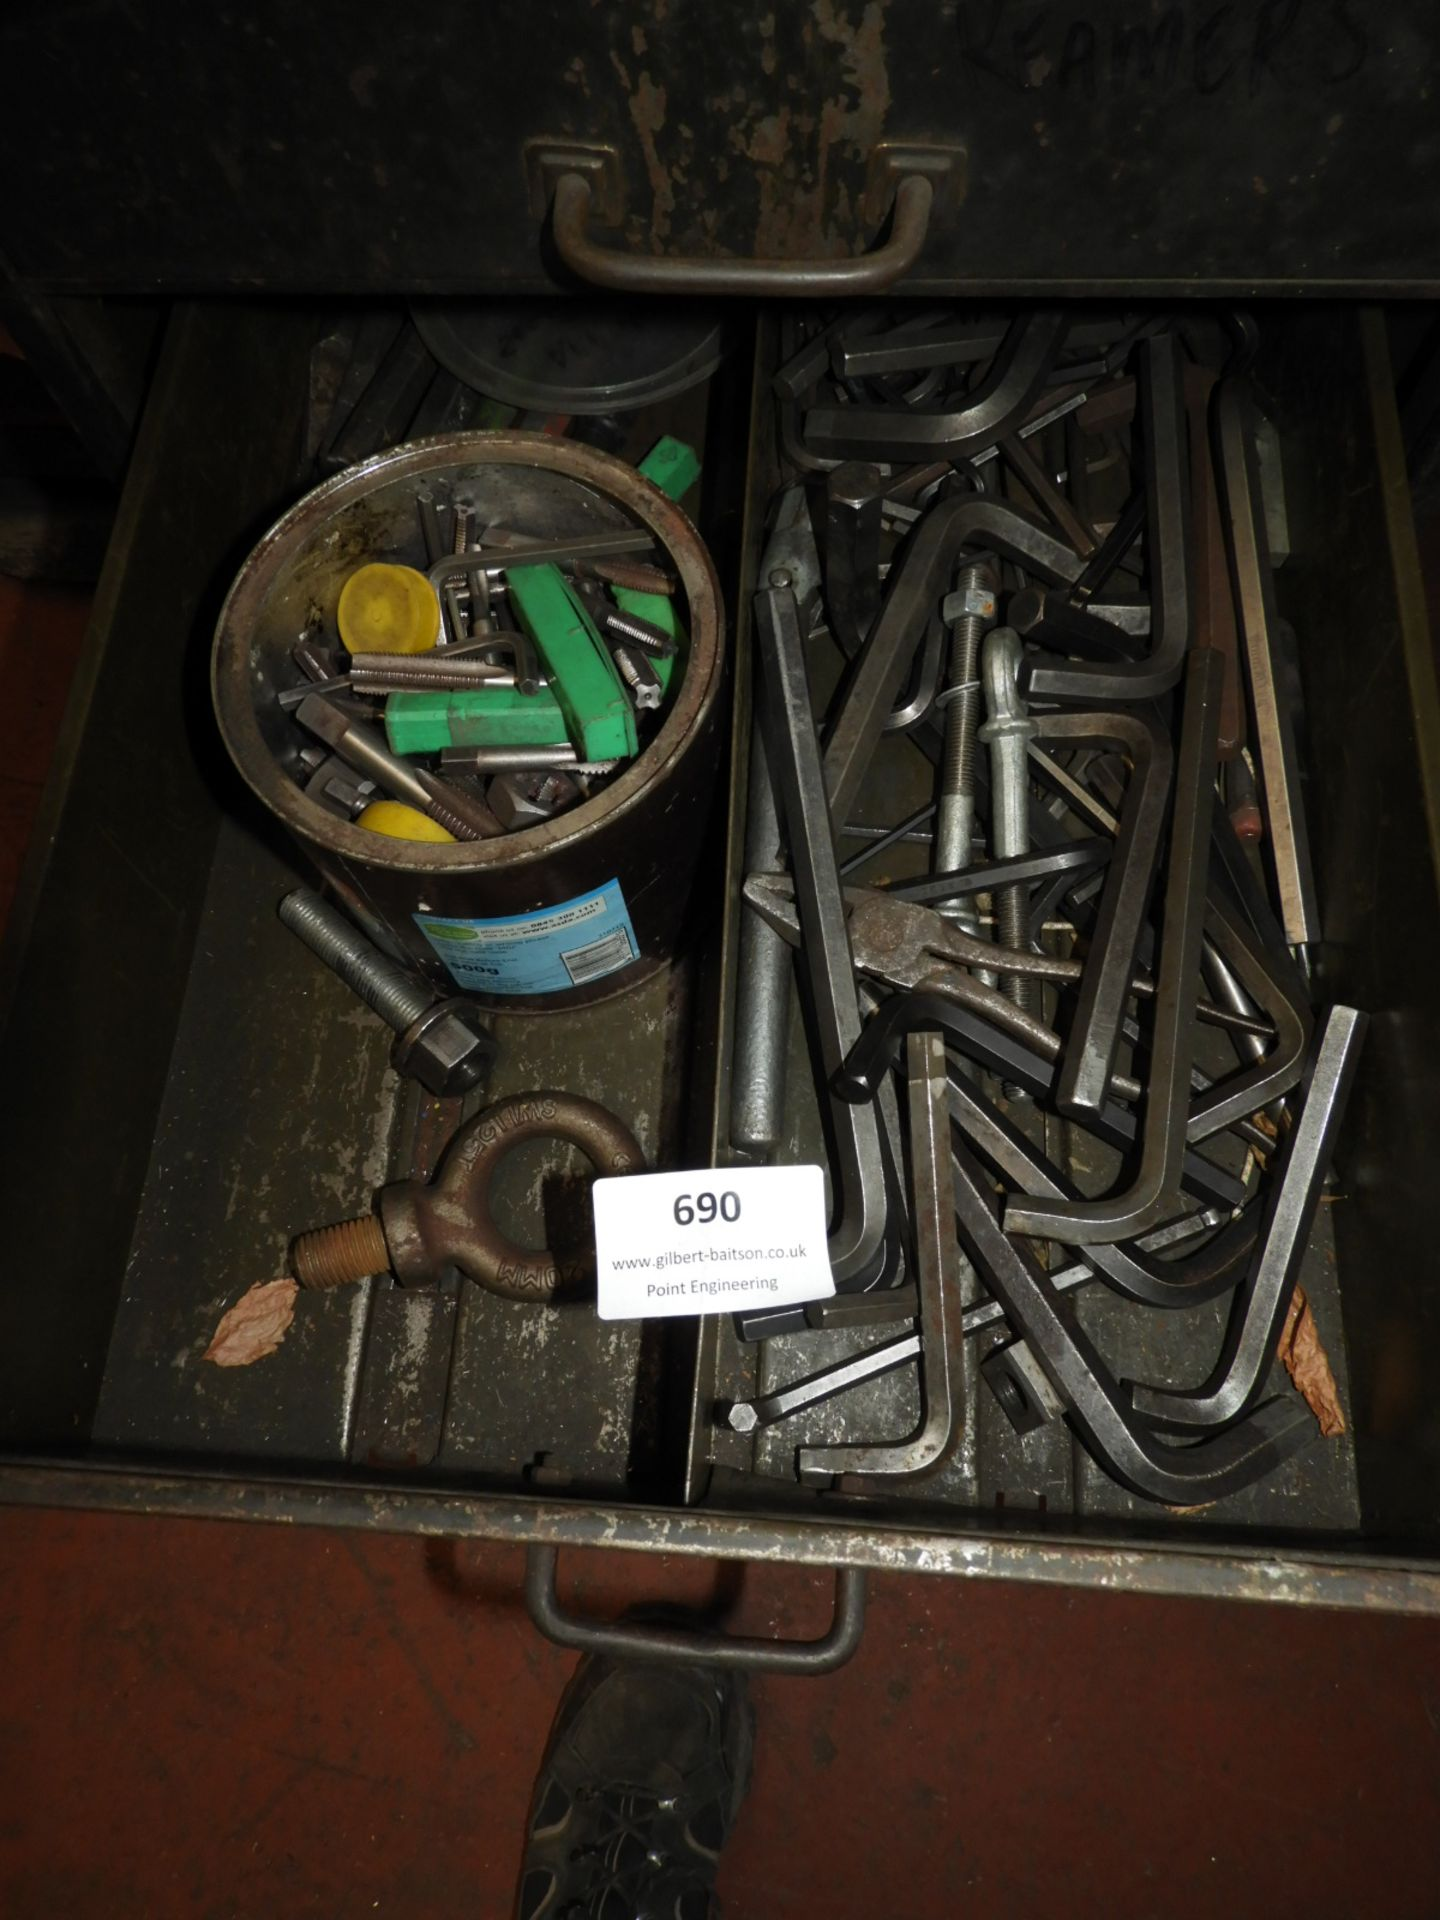 Lot 690 - *Contents of Drawer; Assorted Allen Keys, Taps, Di